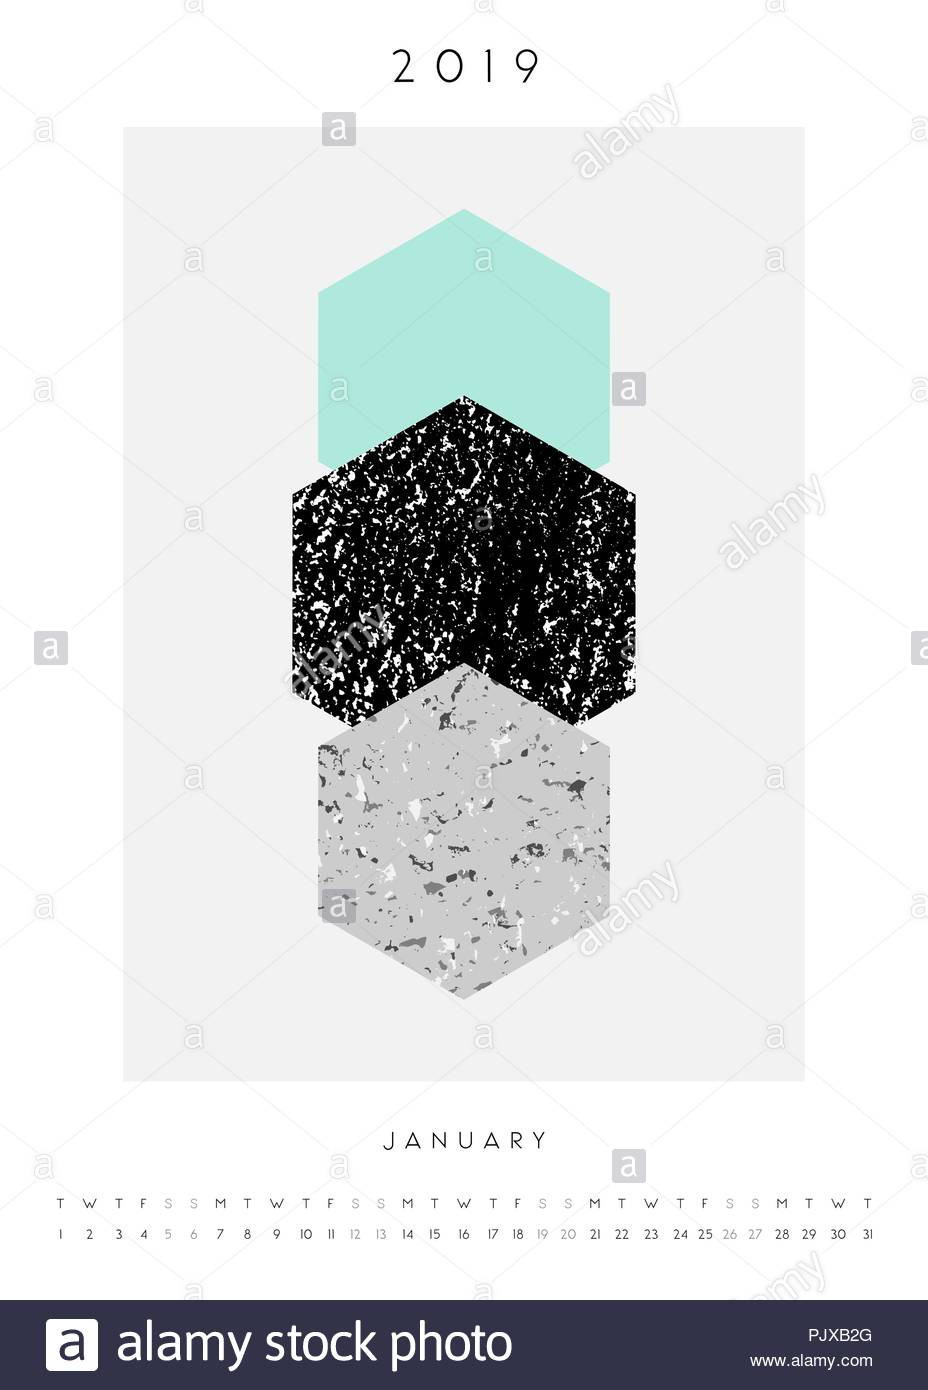 Geometry Template Printable Printable A4 Size January 2019 Calendar Template Abstract